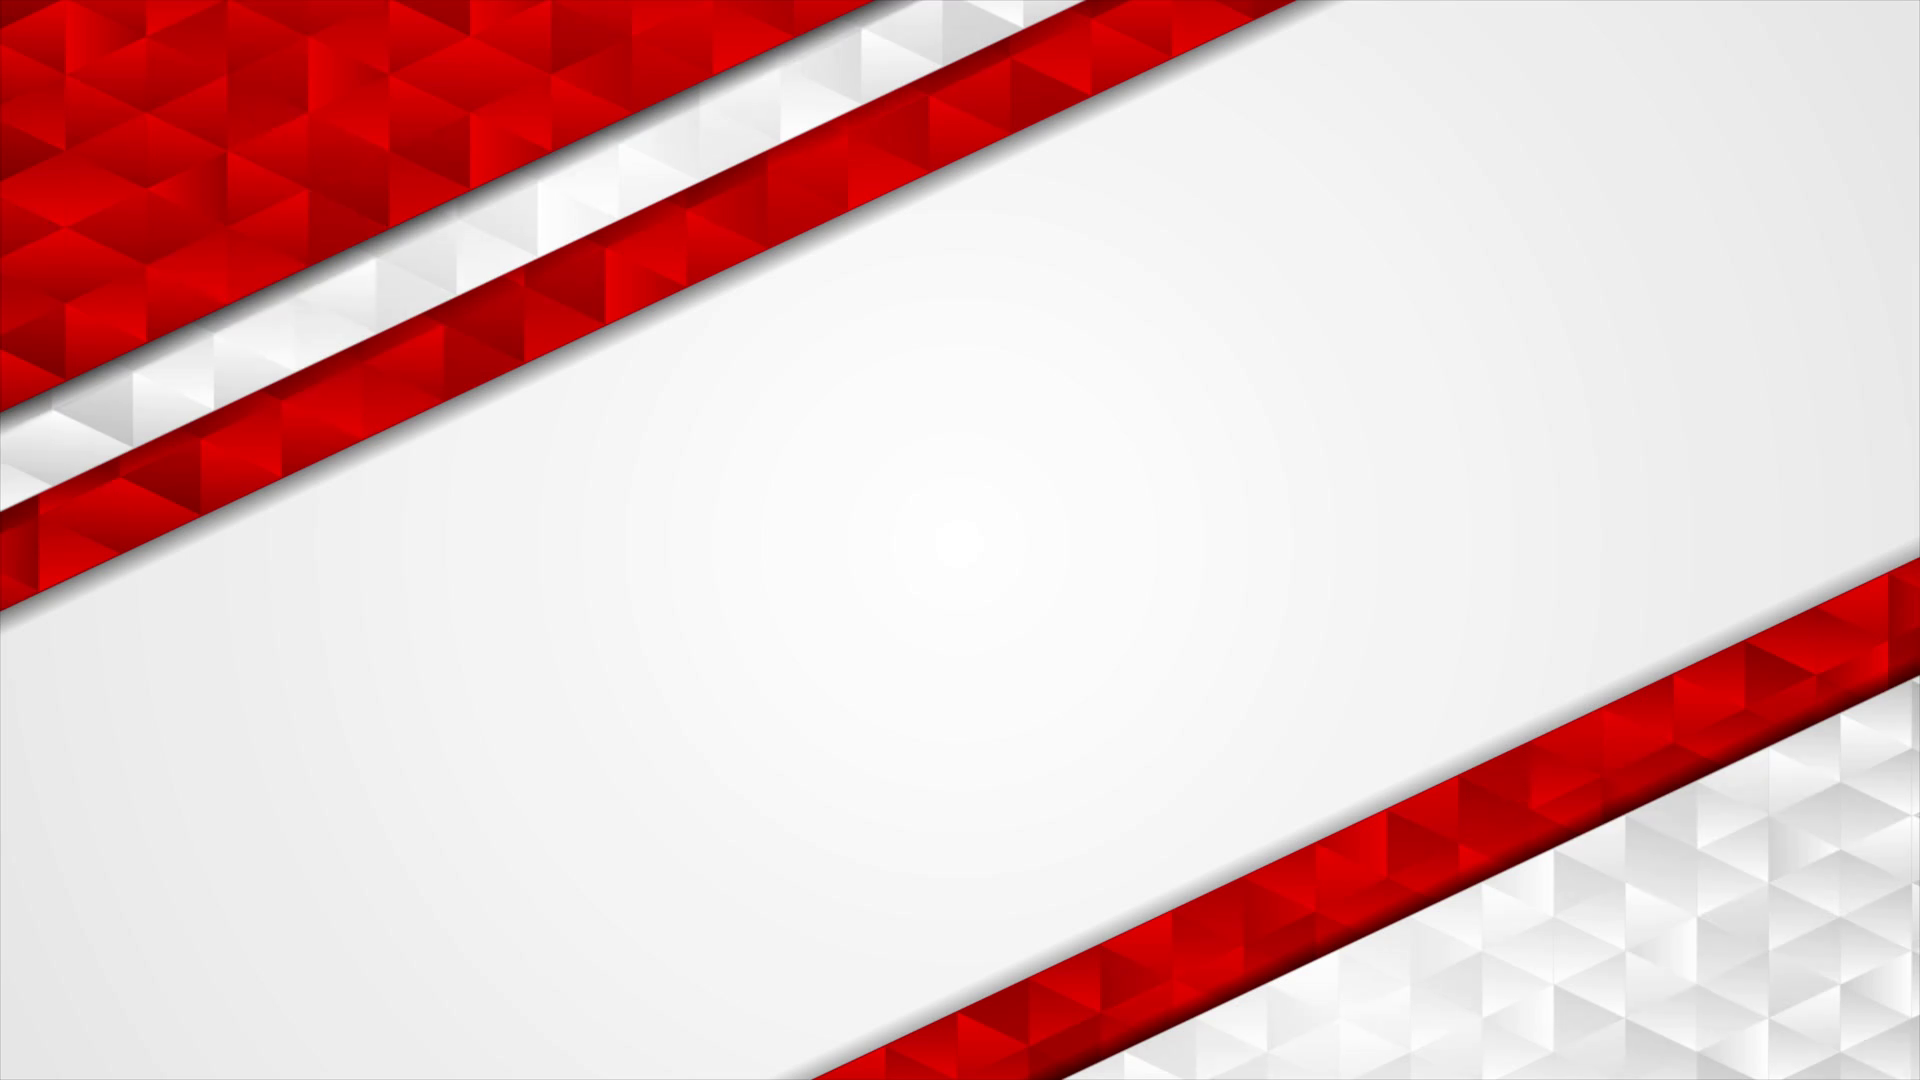 15+ Best New Red And White Background Hd Png